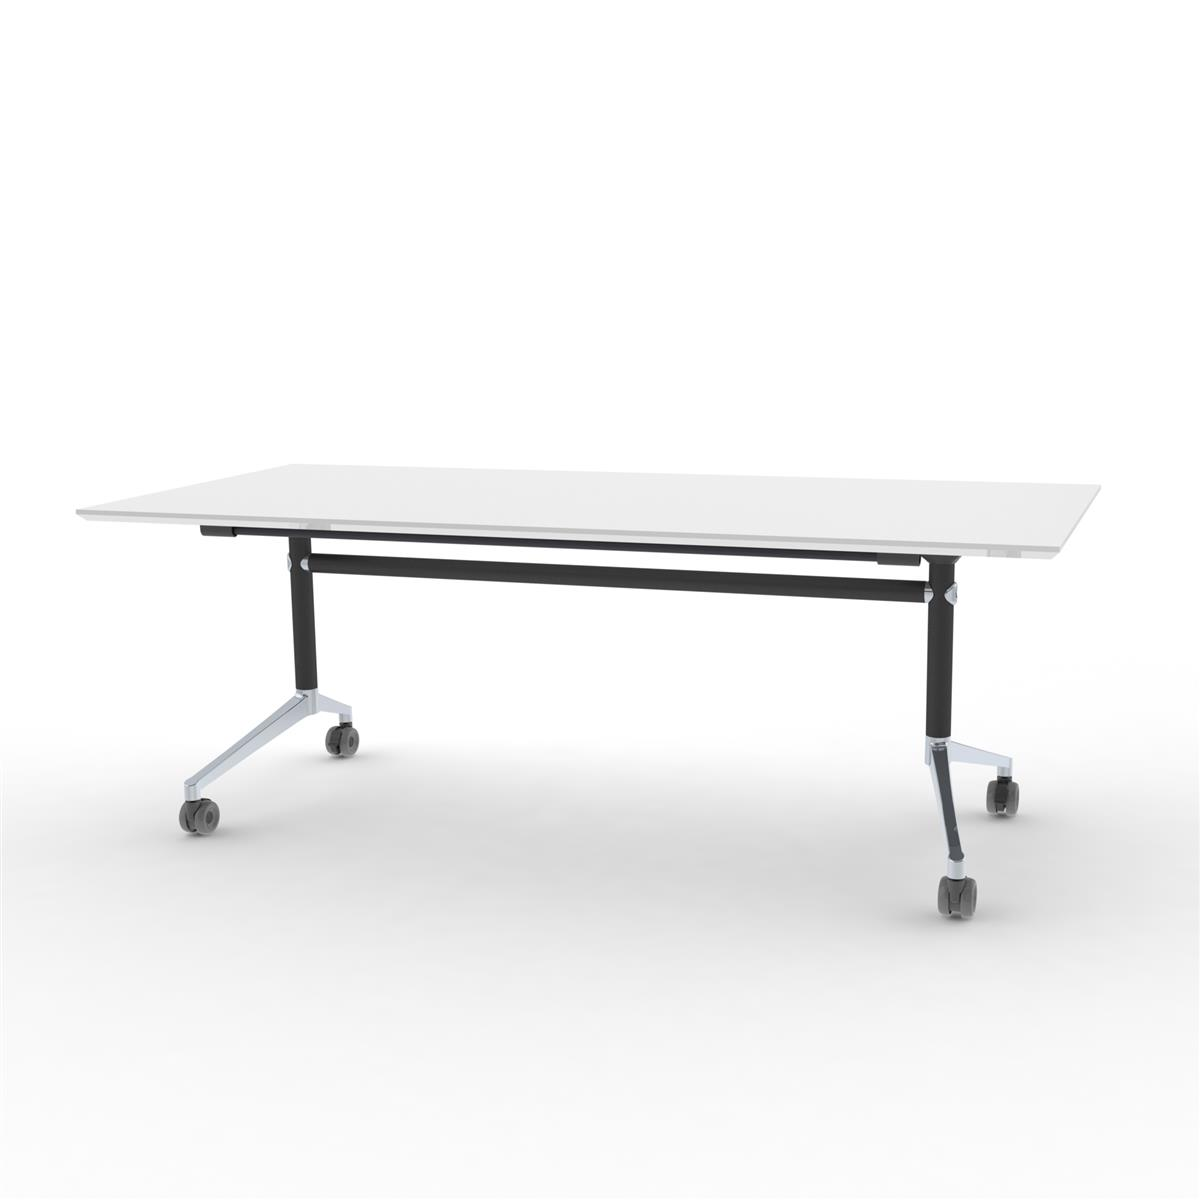 X1 Seamless Folding Table 200x90 cm med hvit bordplate, sort og aluminium ramme